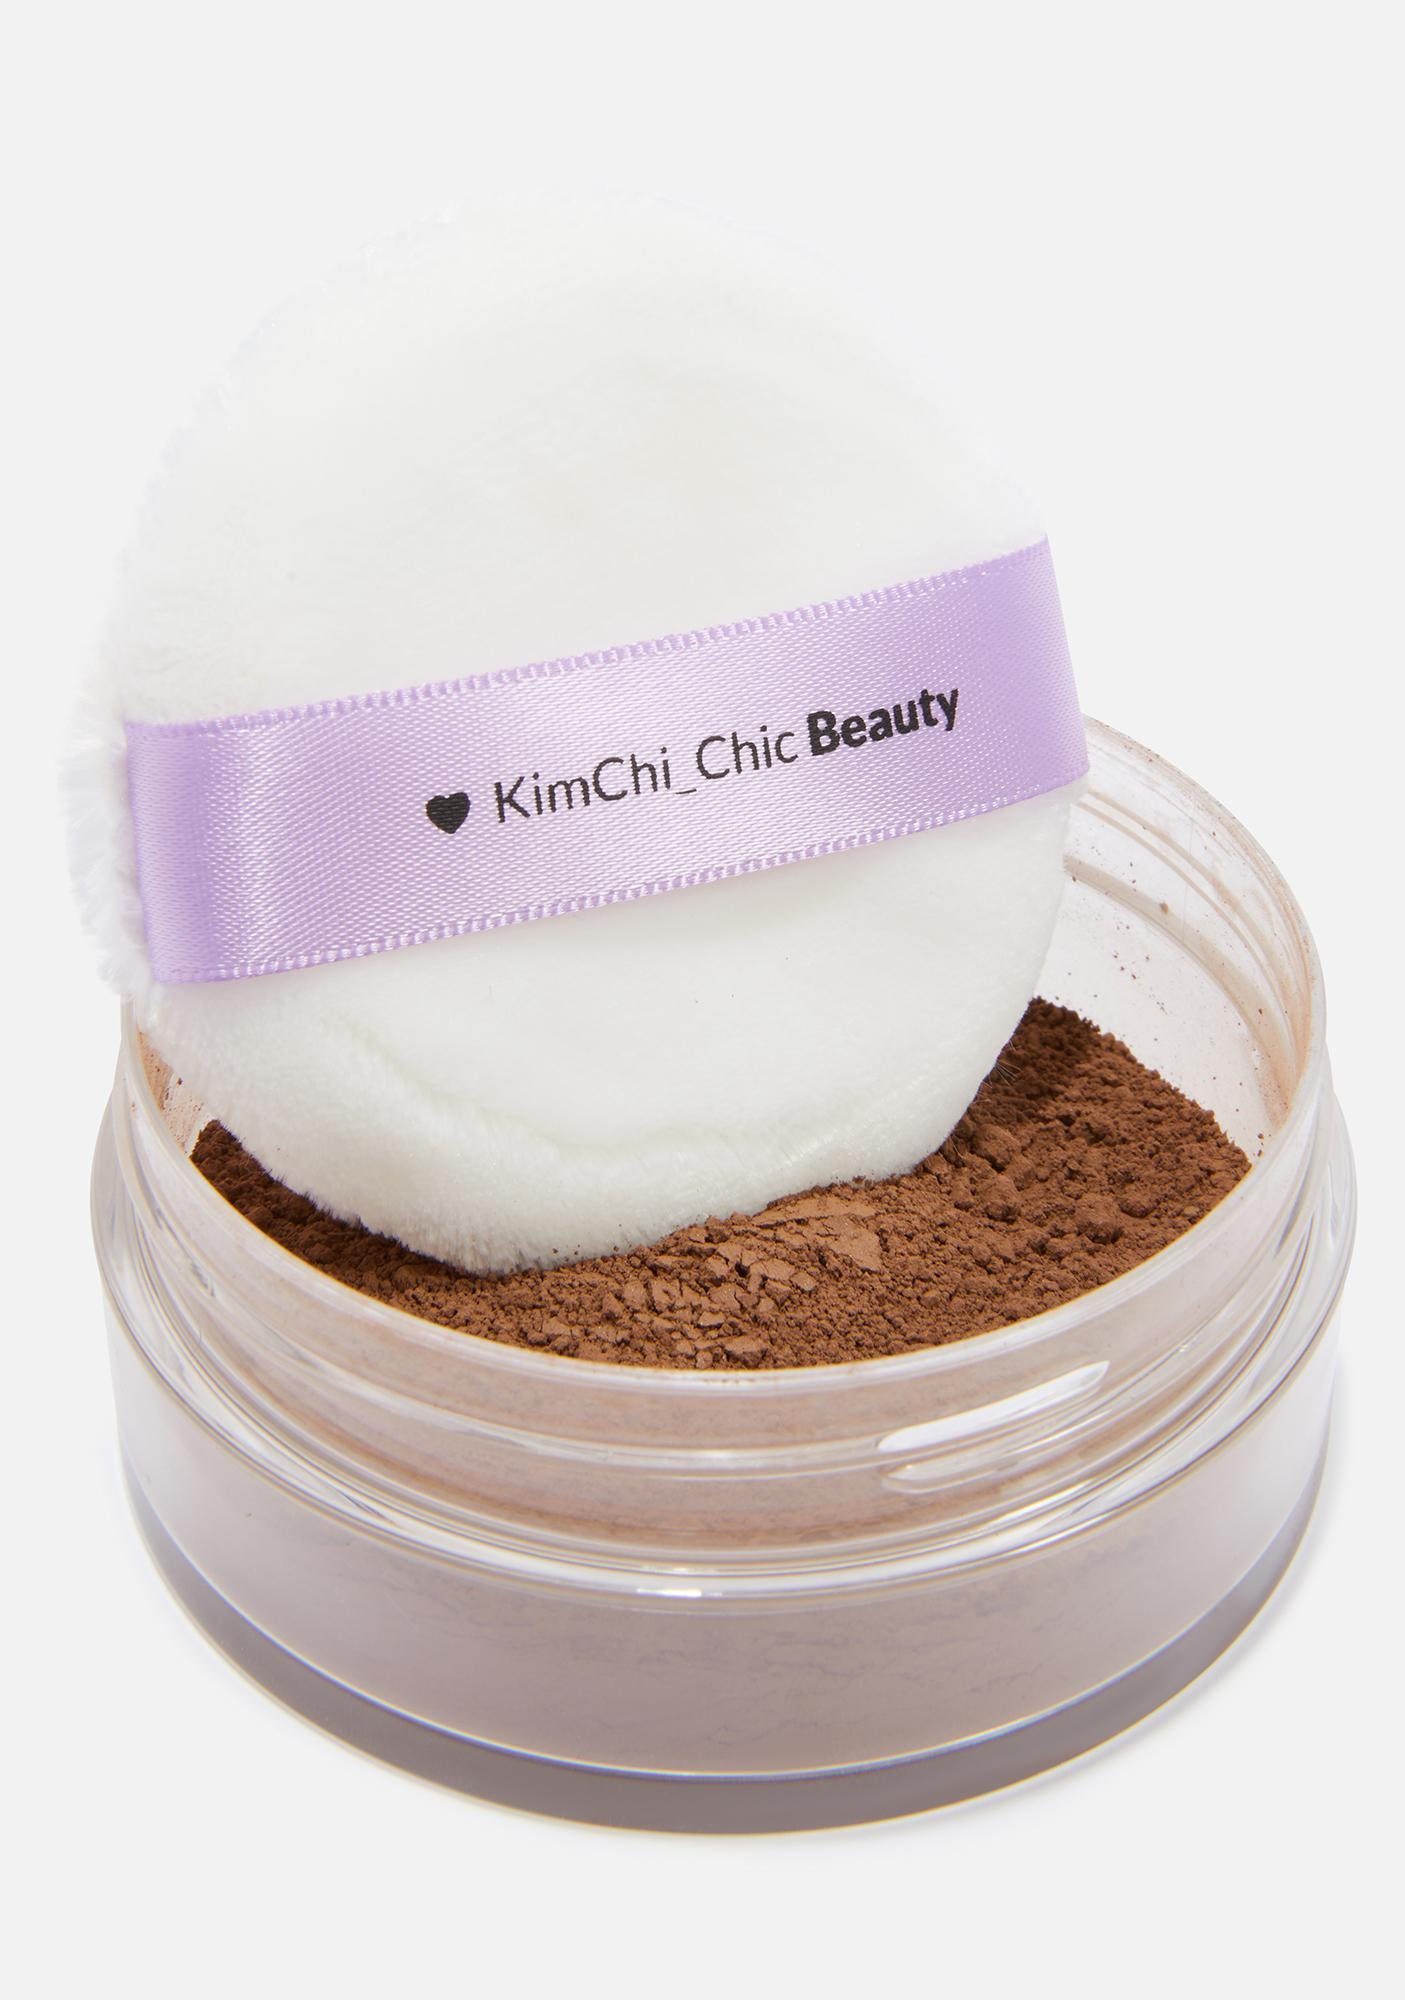 KimChi Chic Beauty Puff Puff Pass Setting Powder in Chocolate